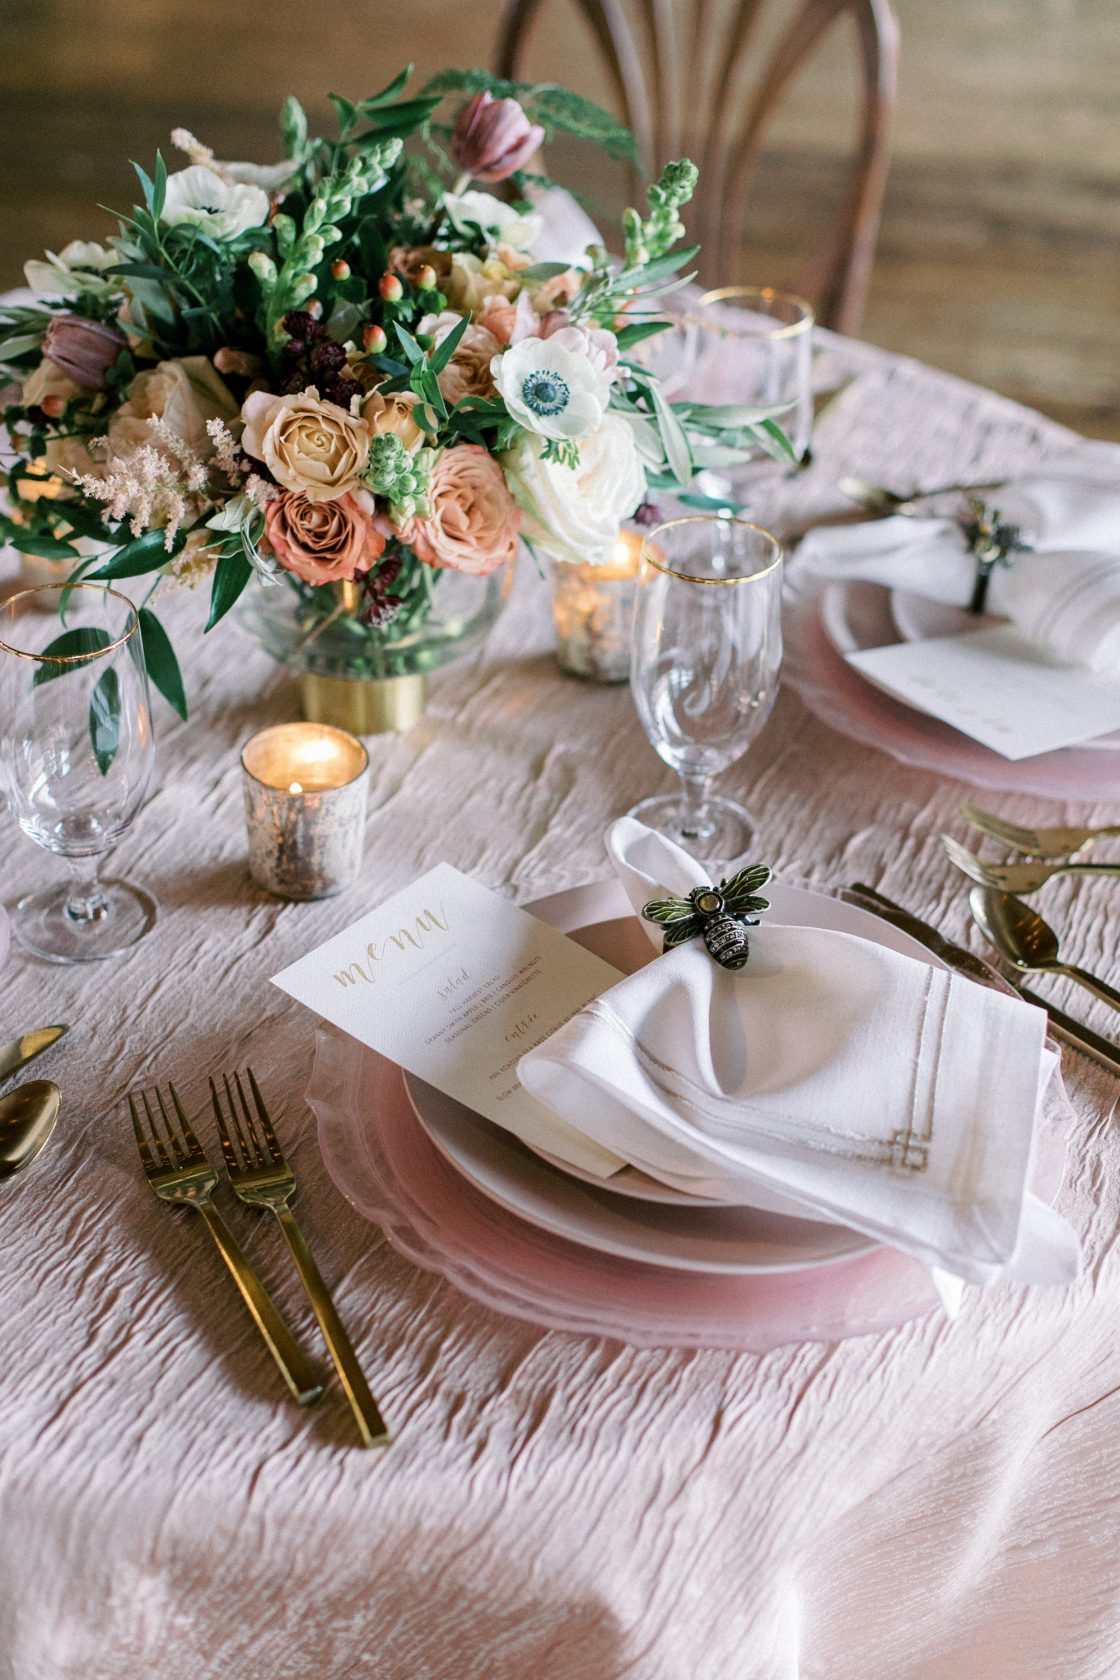 Bumble Bee Garden Inspired Wedding Place Setting